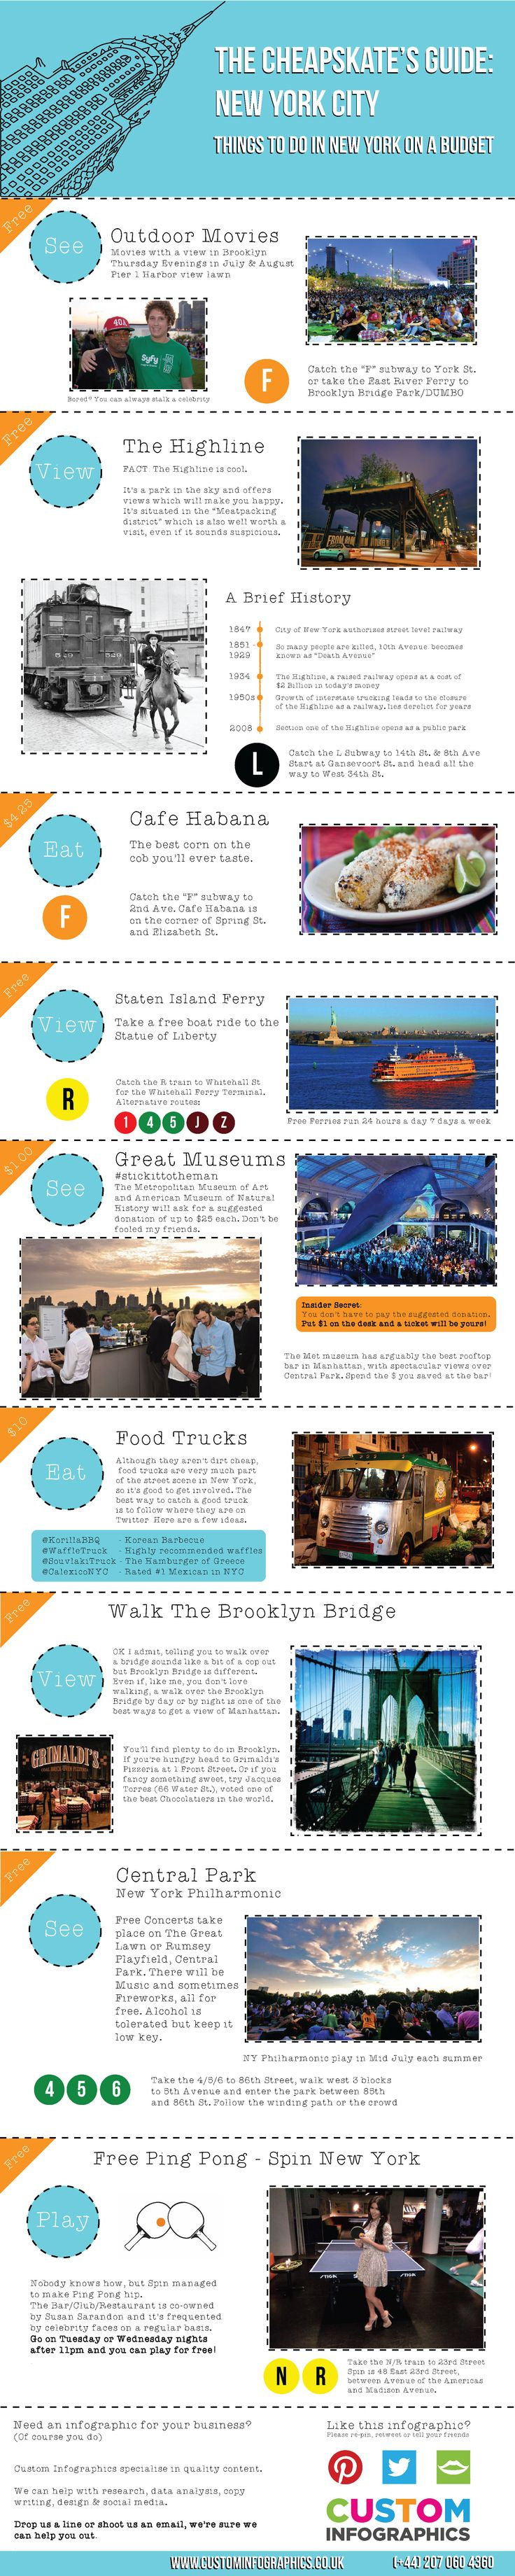 Going to New York City? Check out this Infographic. It's an insiders guide -  10 top things to do in New York when you want to do awesome stuff but don't want to spend too much money. Pin it if you like it!